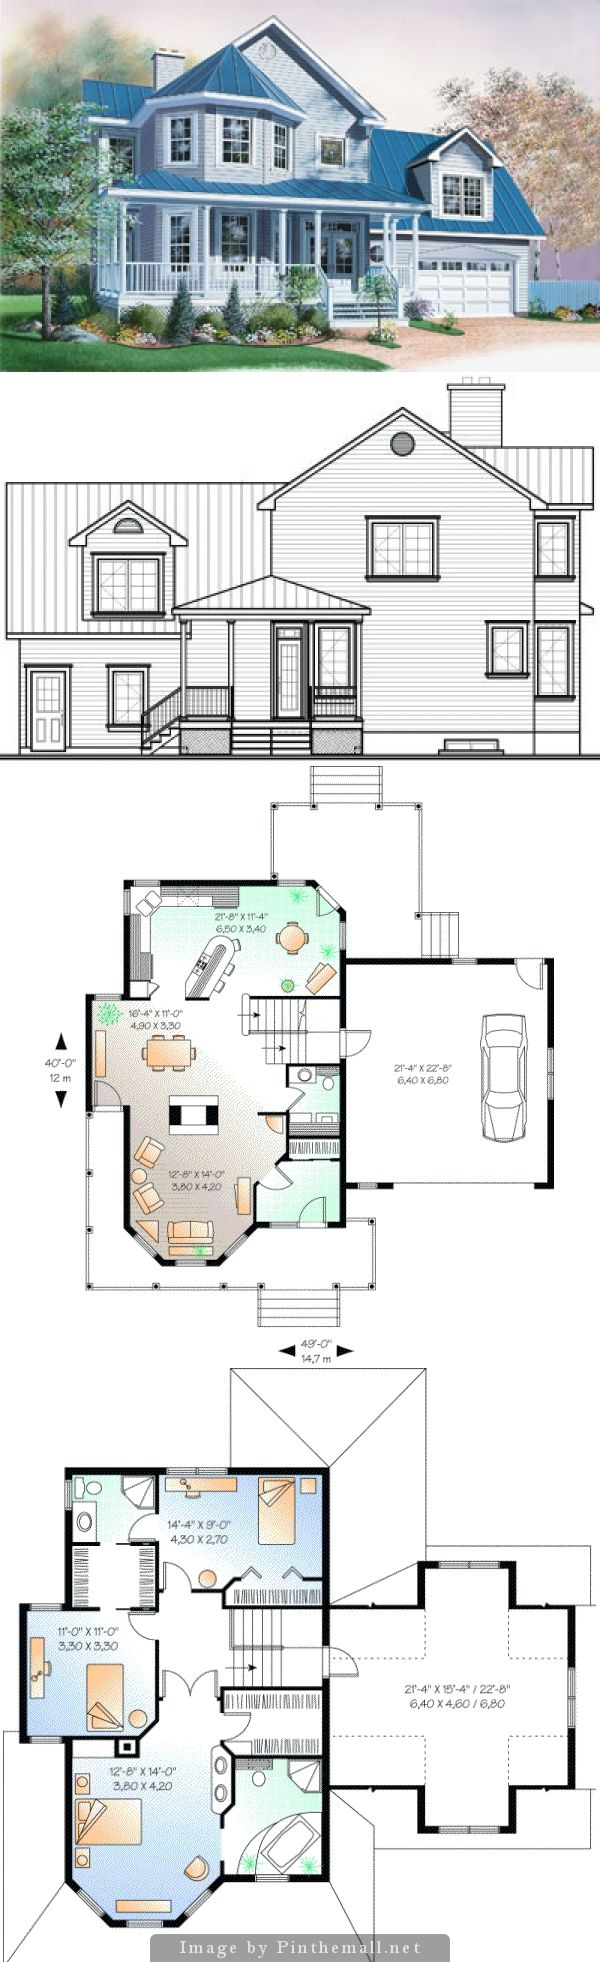 77 best cottage plans images on pinterest house floor plans sims 3 tiny homes dream homes floor plans house plans architecture house arms facades